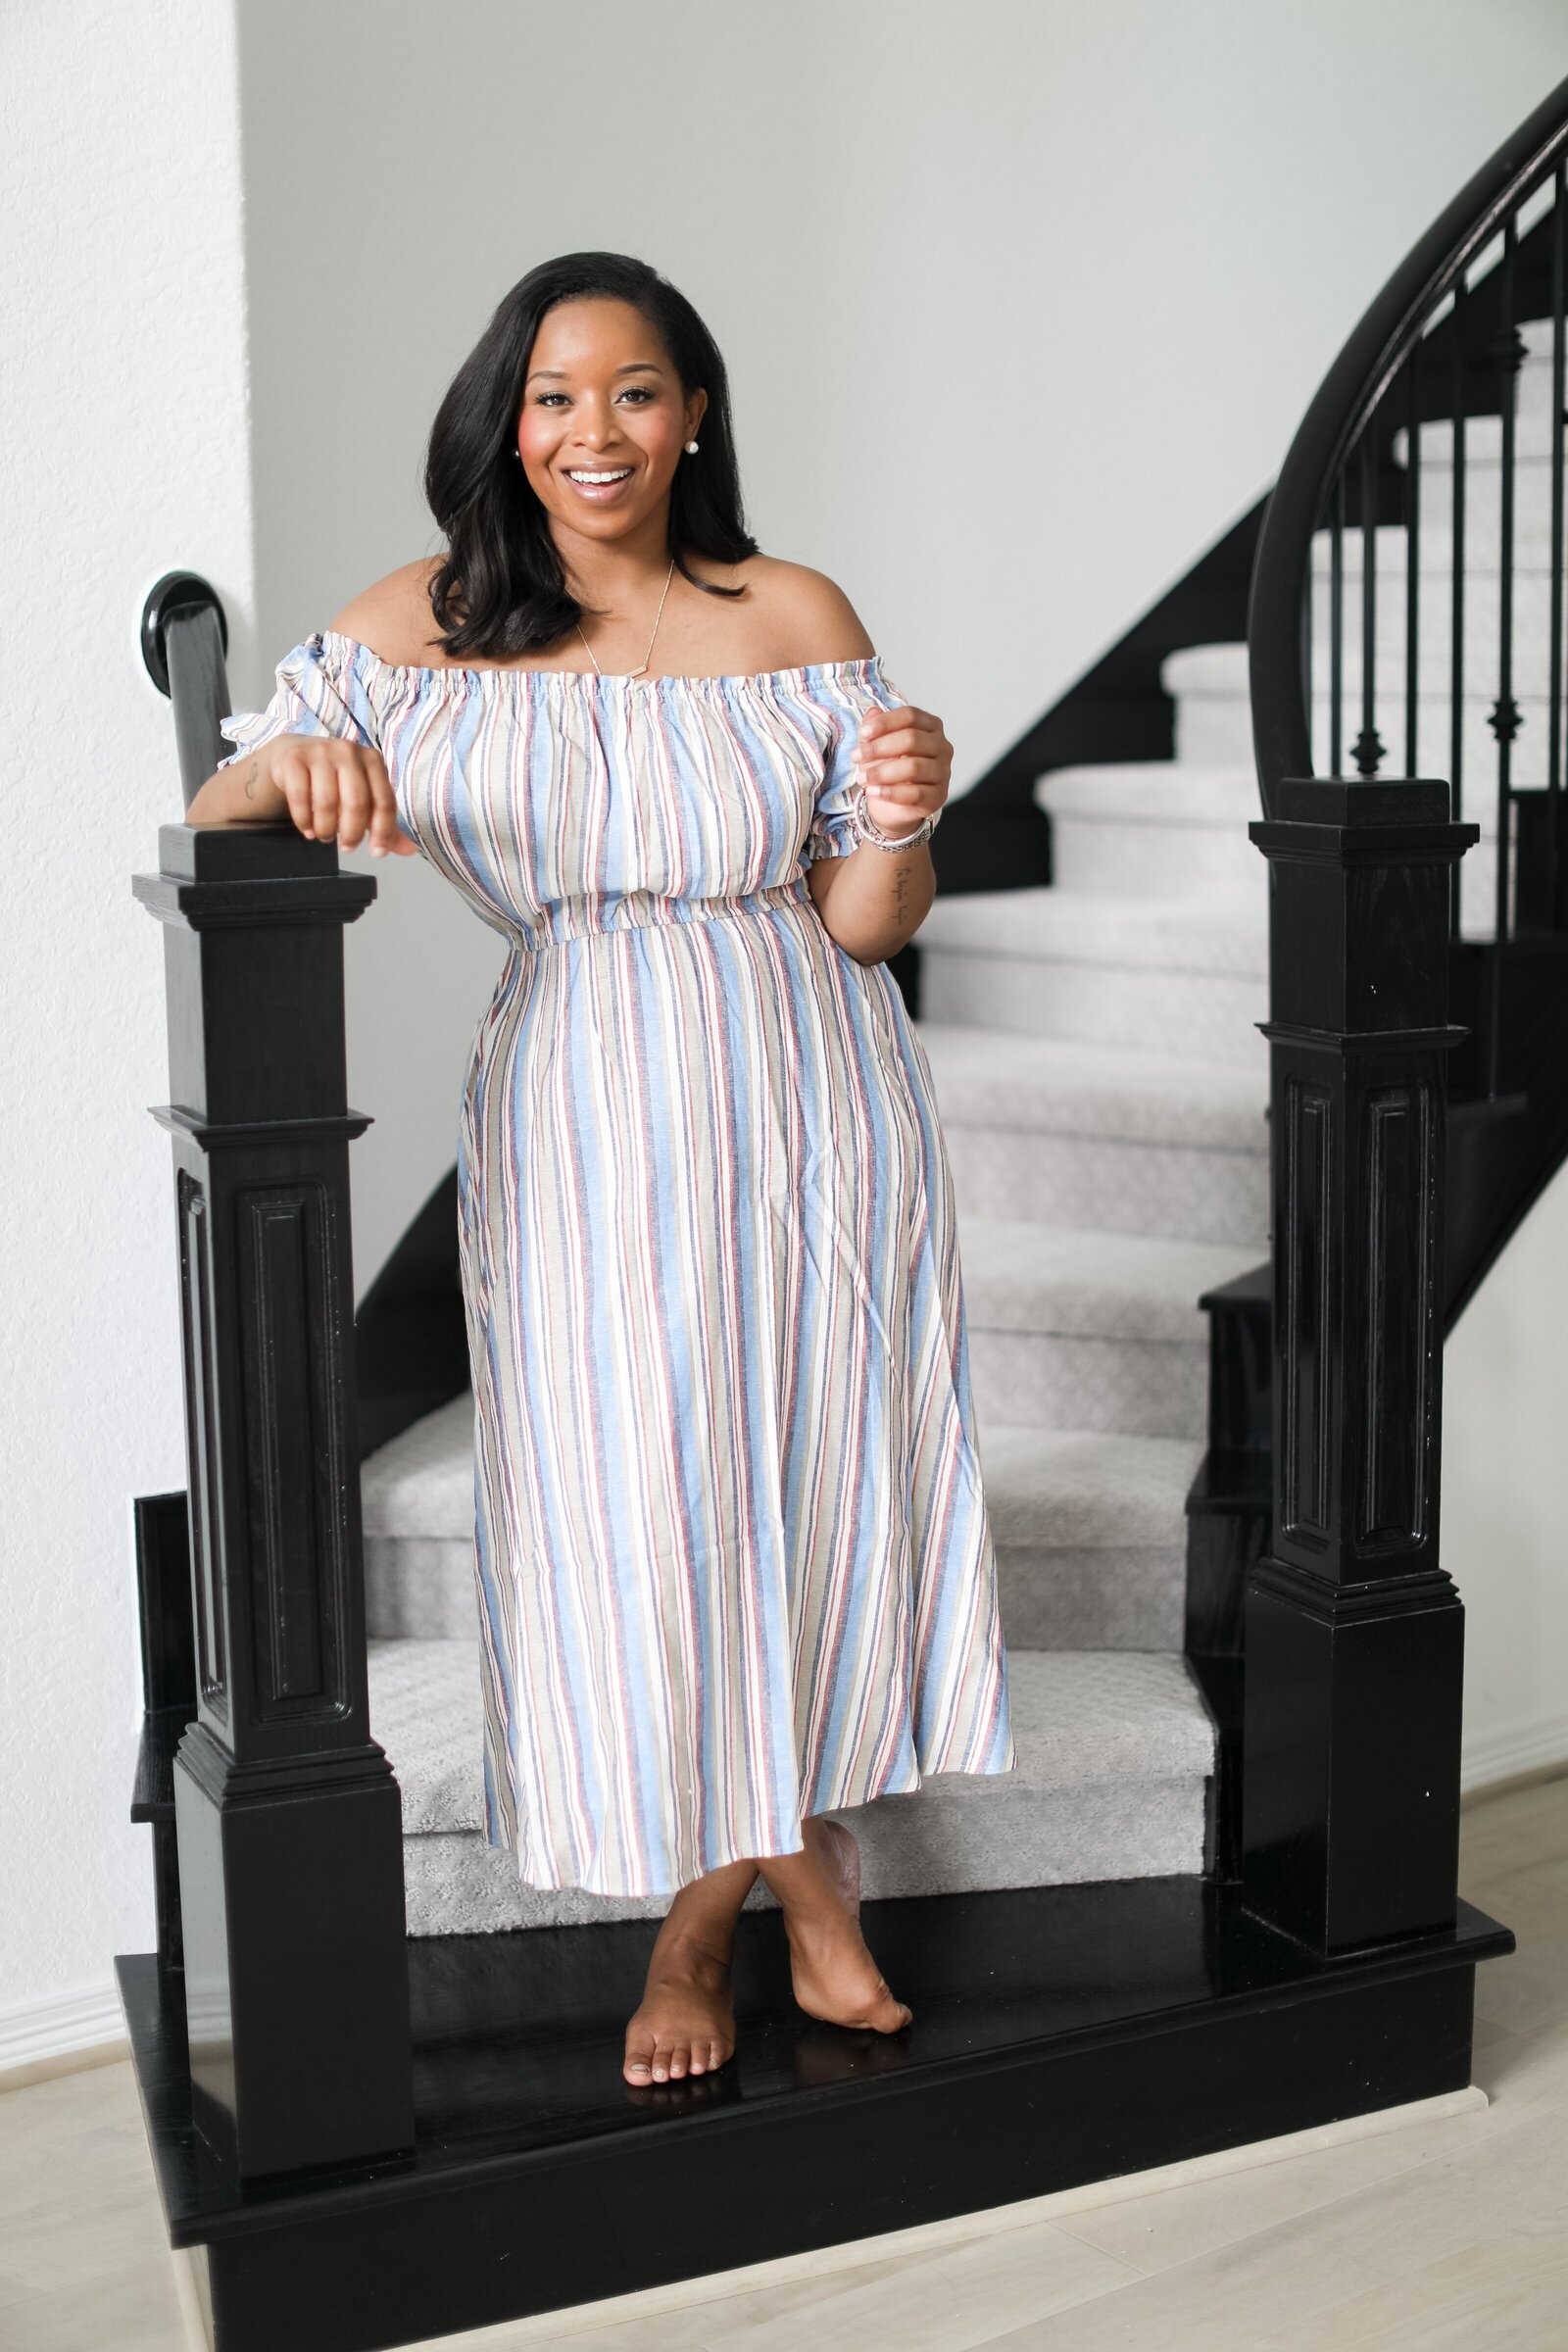 Carmen Renee - Houston Texas Lifestyle Beauty Style Decor Motherhood Blogger - 19